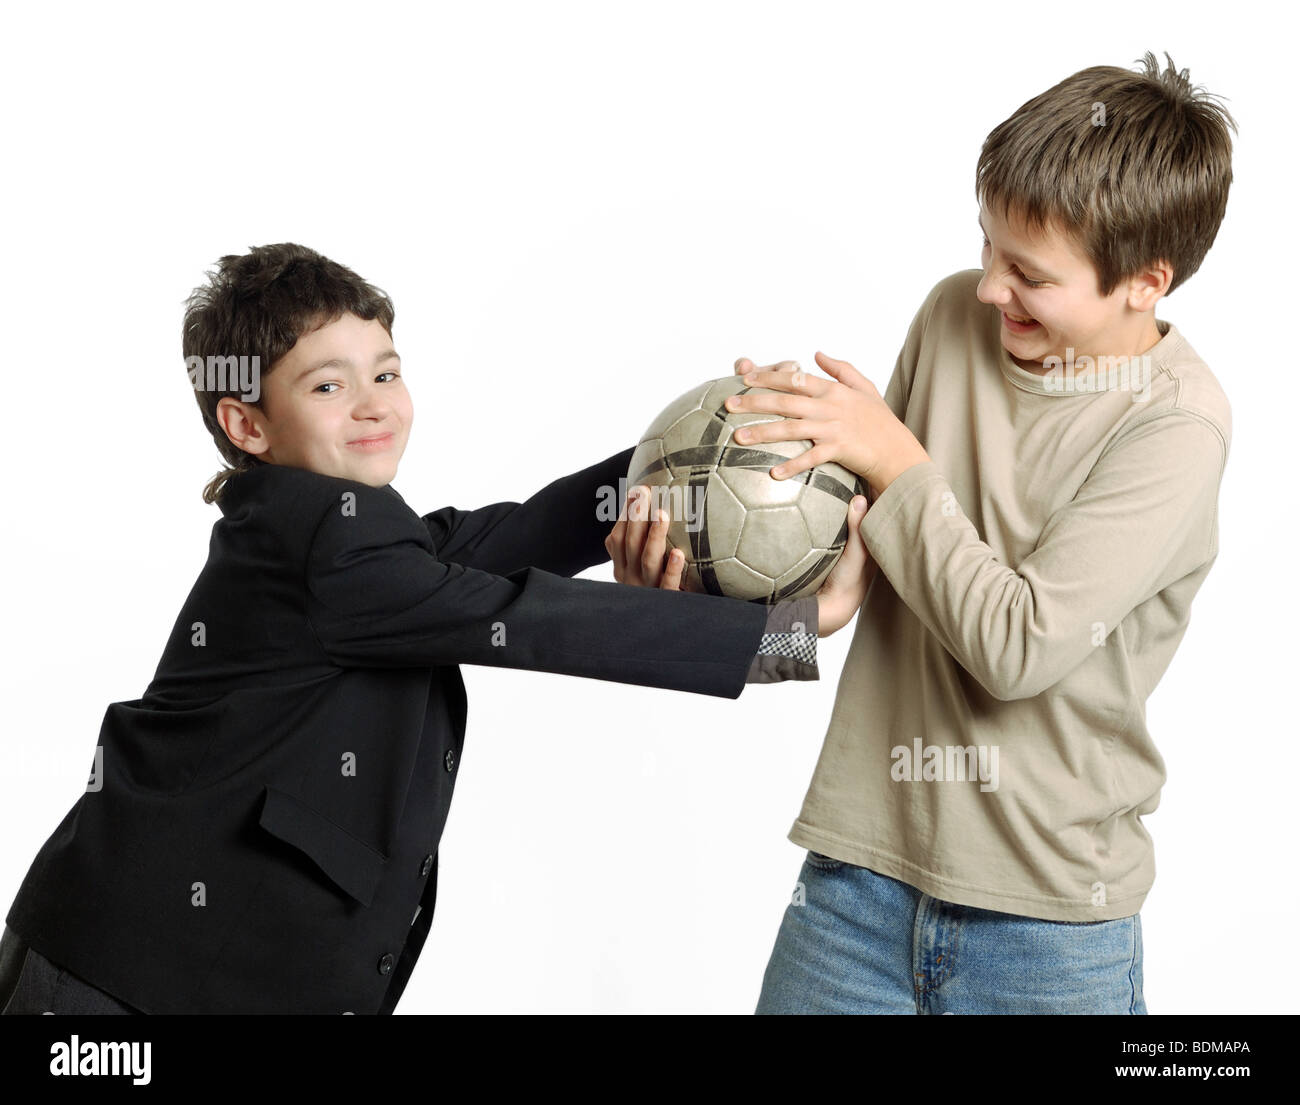 Two preteen boys pull out ball with each other. Side view. The children are smiling. Stock Photo